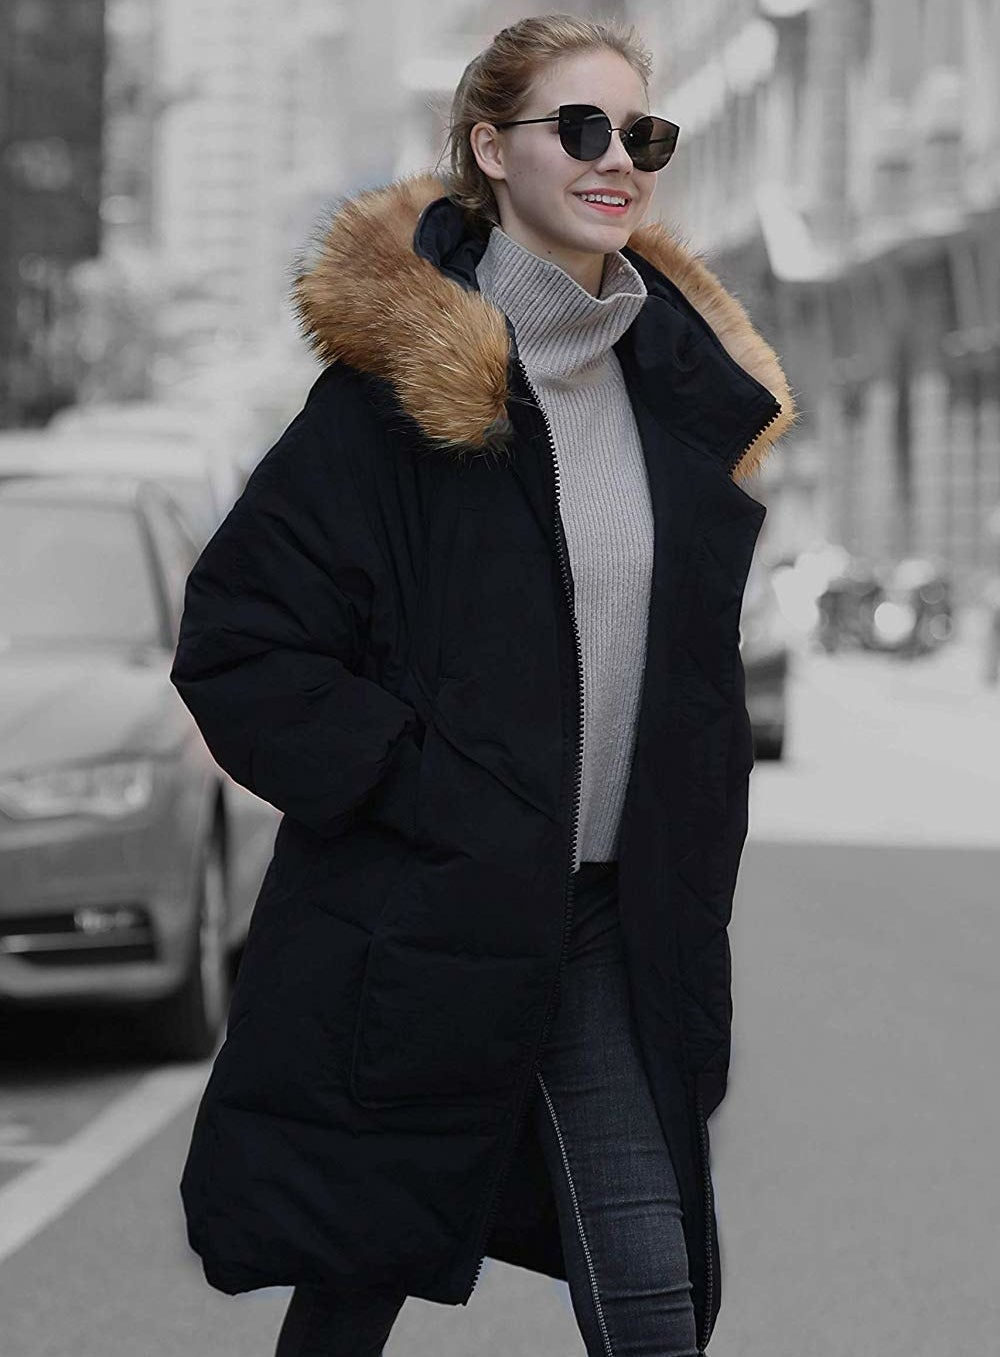 """Promising review: """"This is an amazing coat. The quality is fabulous. Fabric is marvelous. Many pockets. The faux-fur looks awesome, not fake. The zippers are heavy-duty. Extremely warm and comfortable. I usually like to layer in winter, but won't have to with this coat. Perfect for my needs. Trendy and eye-catching coat. You wont be disappointed."""" —SusanPrice: $89.99 (available in three colors, and sizes 4/6–16/18)"""